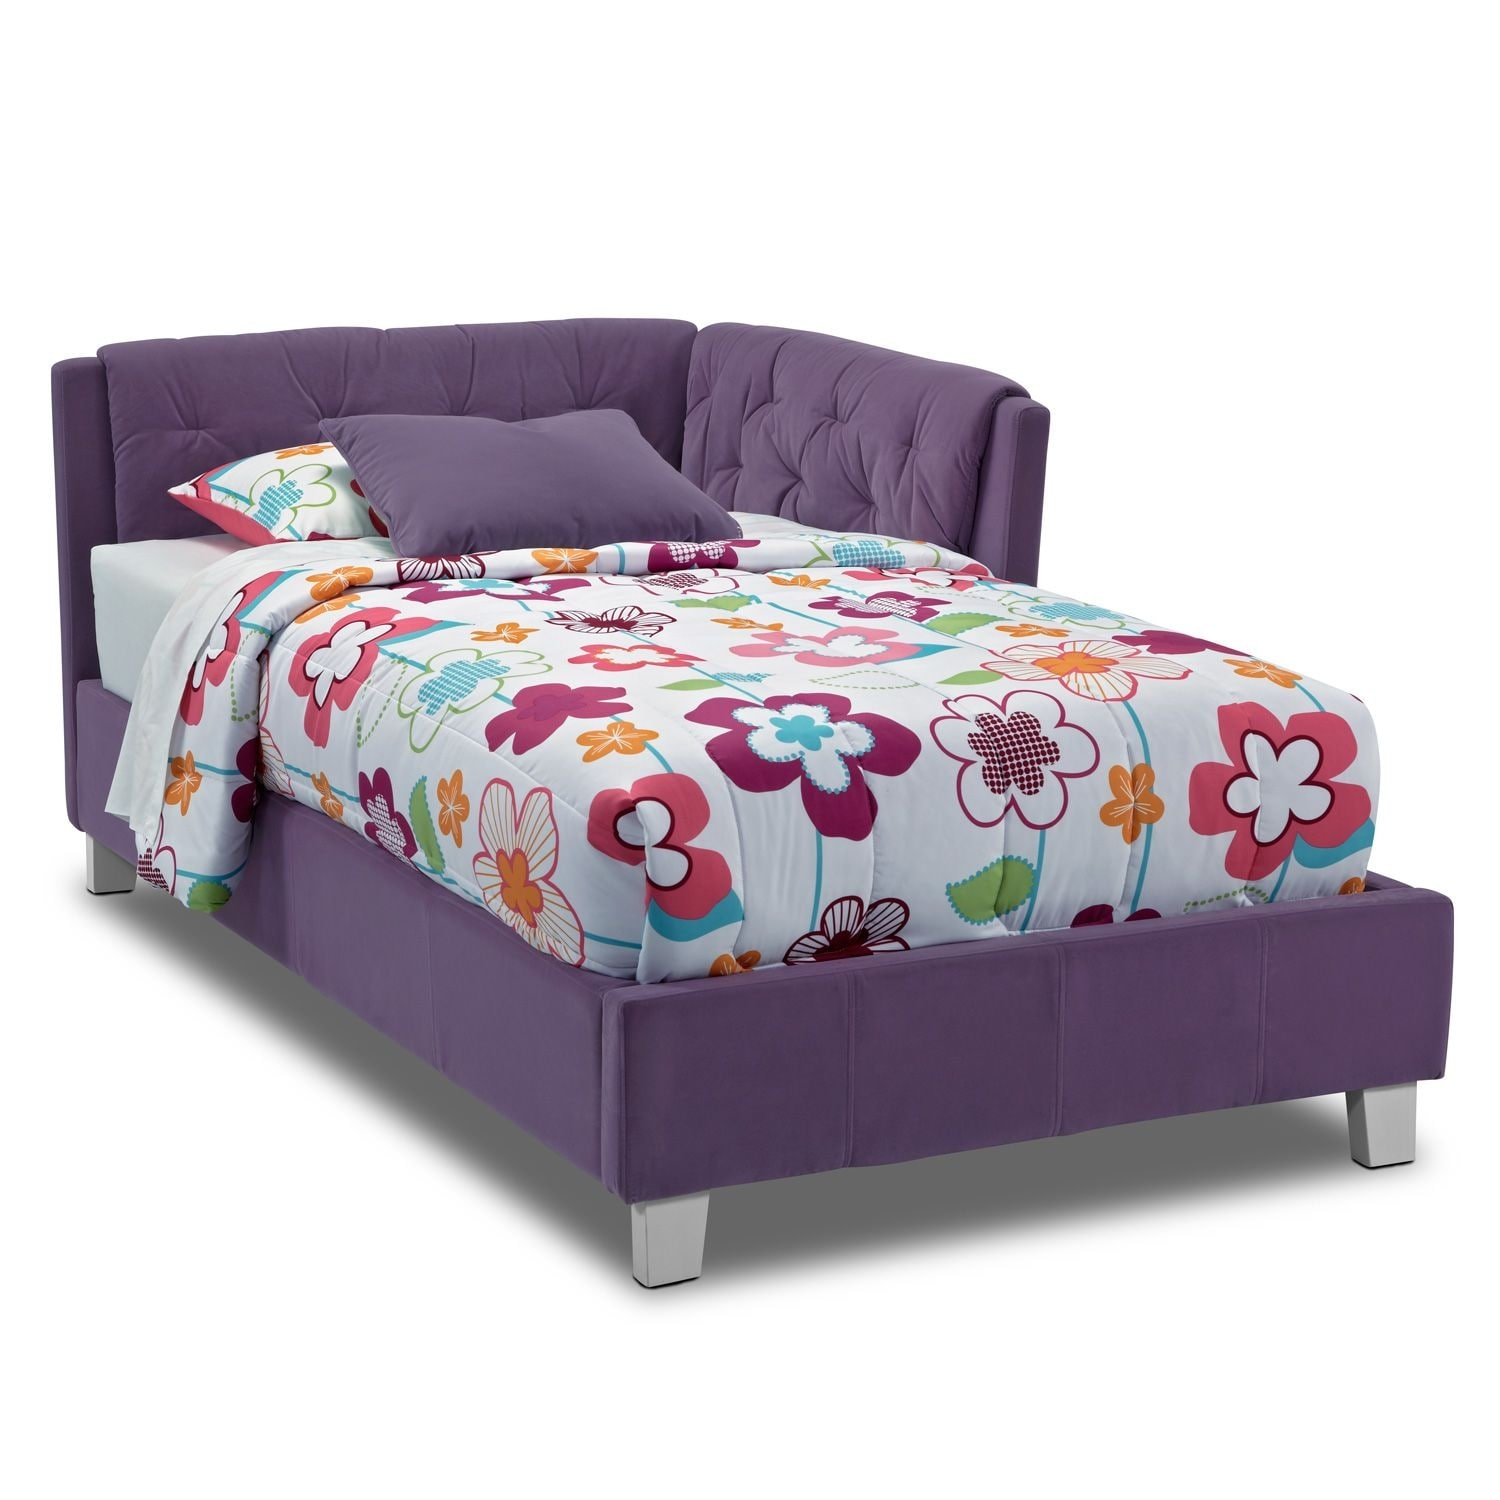 32+ Twin Bed Or Full Bed For Toddler Gif